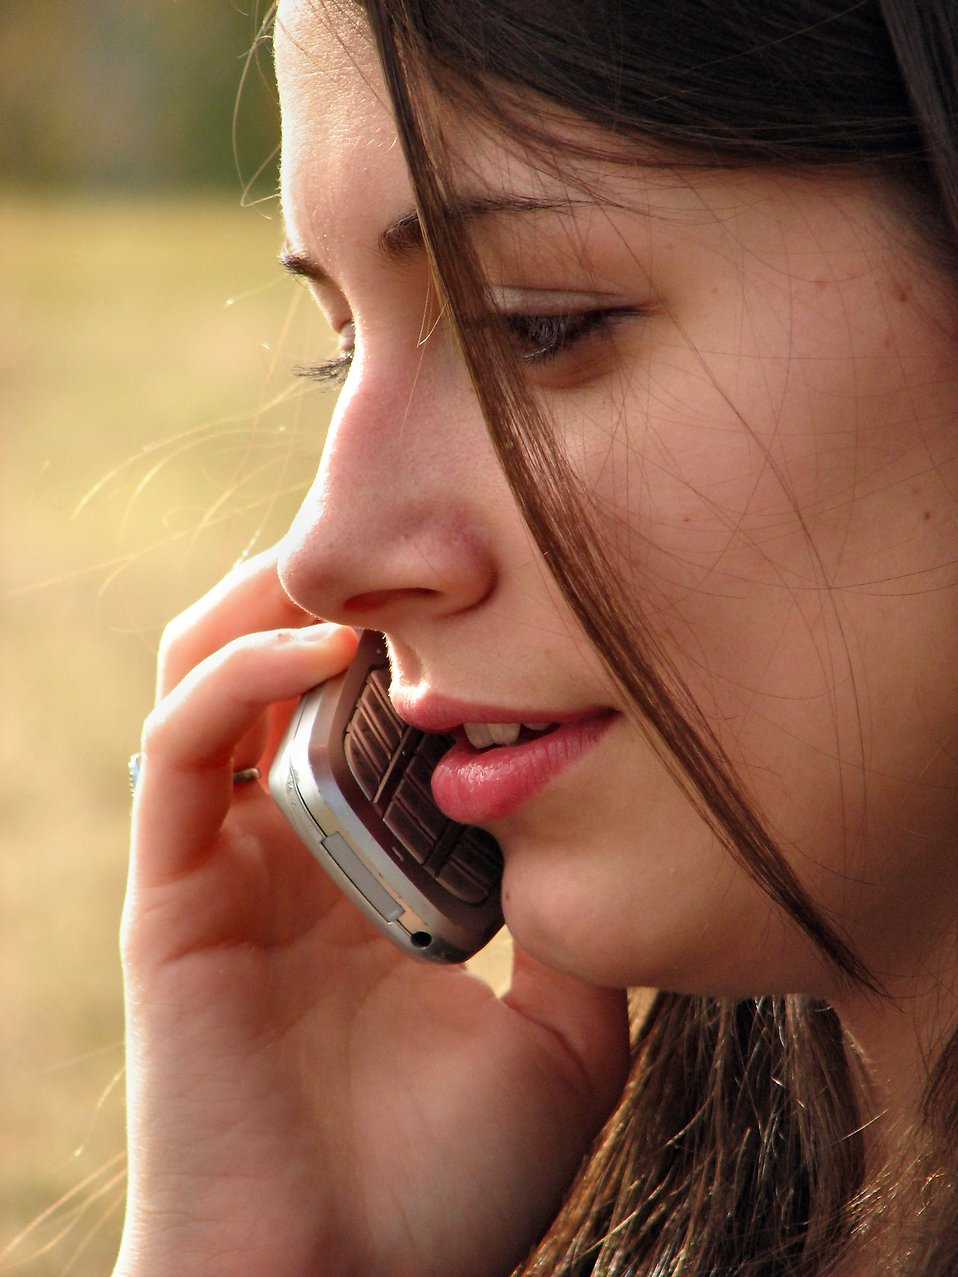 Closeup of a girl talking on a cell phone : Free Stock Photo